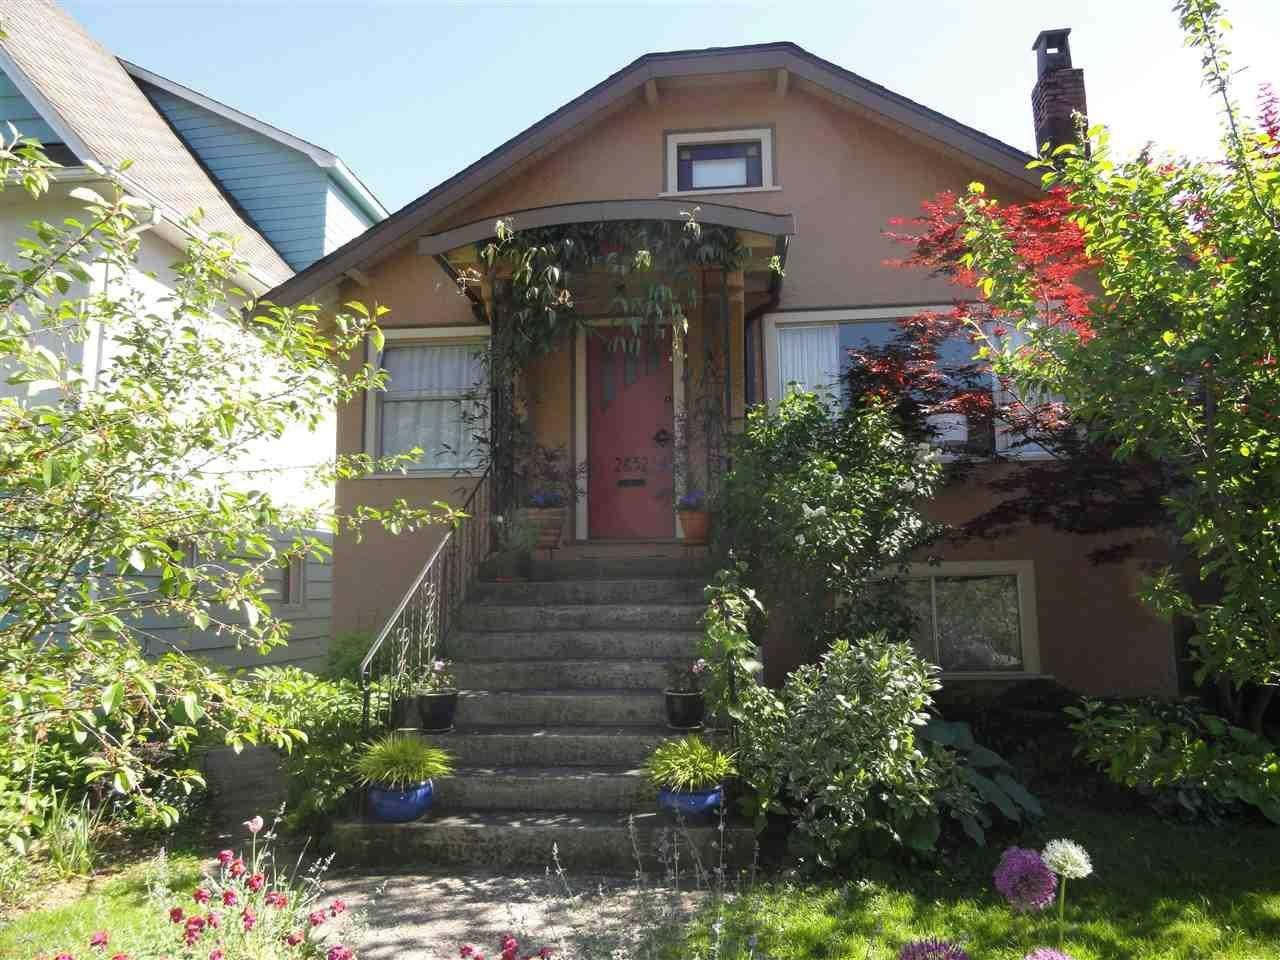 R2066849 - 2652 FRANKLIN STREET, Hastings East, Vancouver, BC - House/Single Family